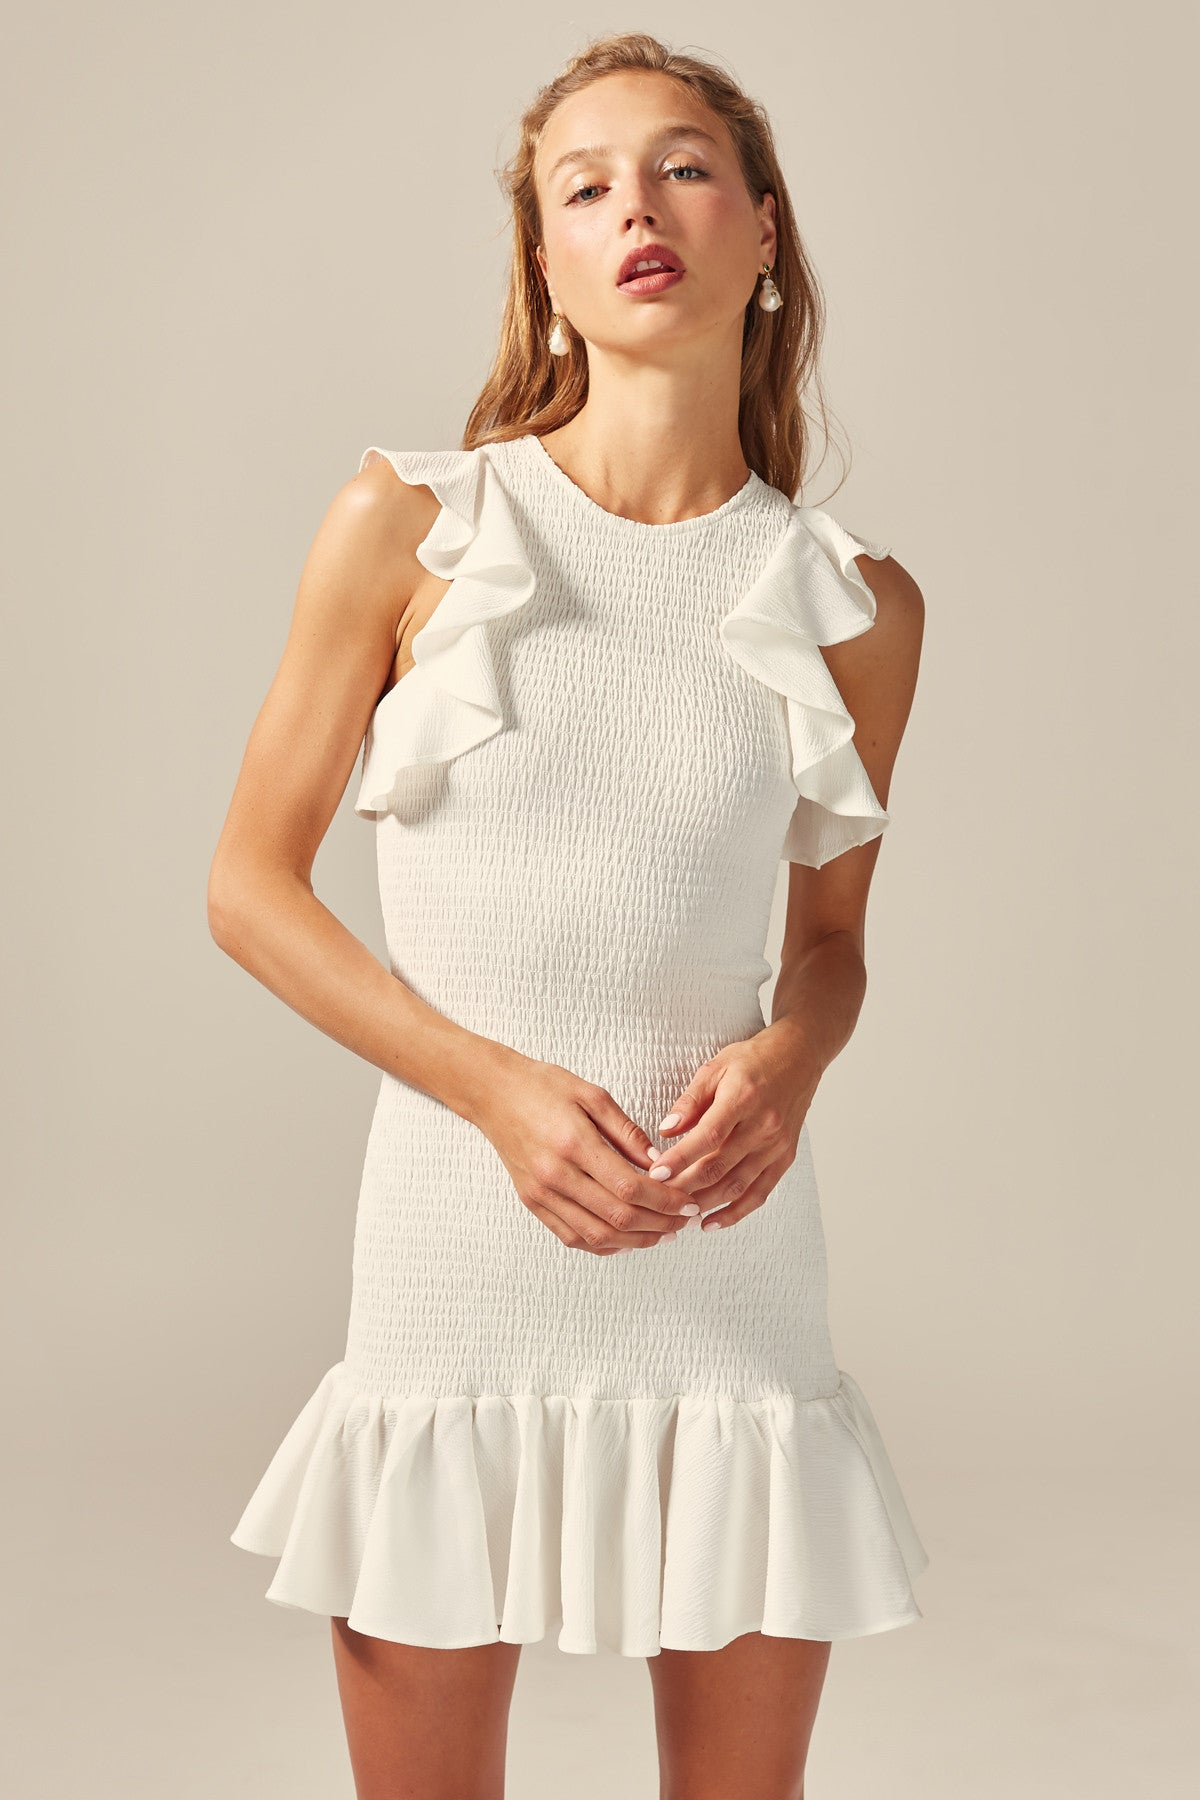 7af2daf9162b C/MEO COLLECTIVE   EXPIRED MINI DRESS ivory   C/MEO COLLECTIVE